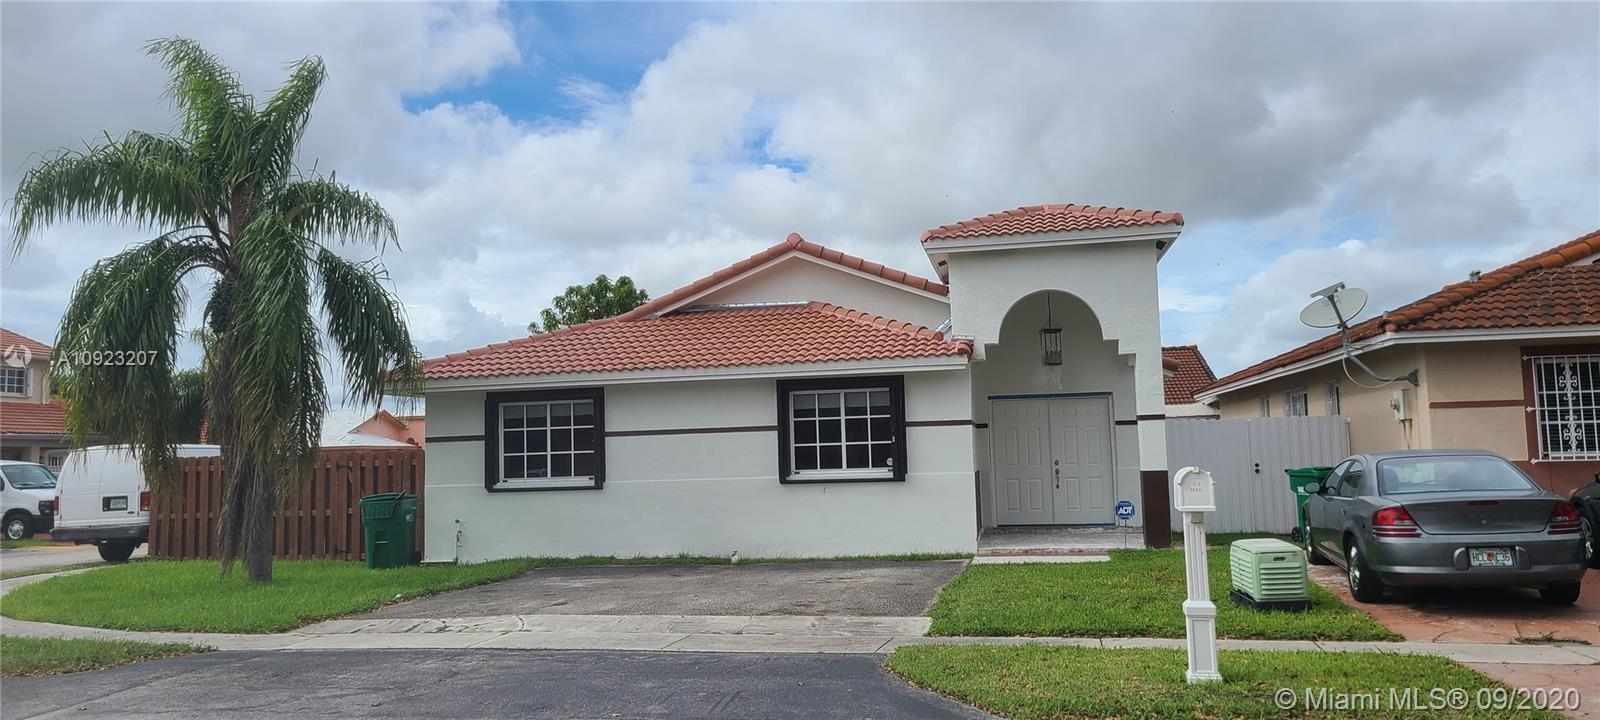 9851 NW 122nd Ter  For Sale A10923207, FL